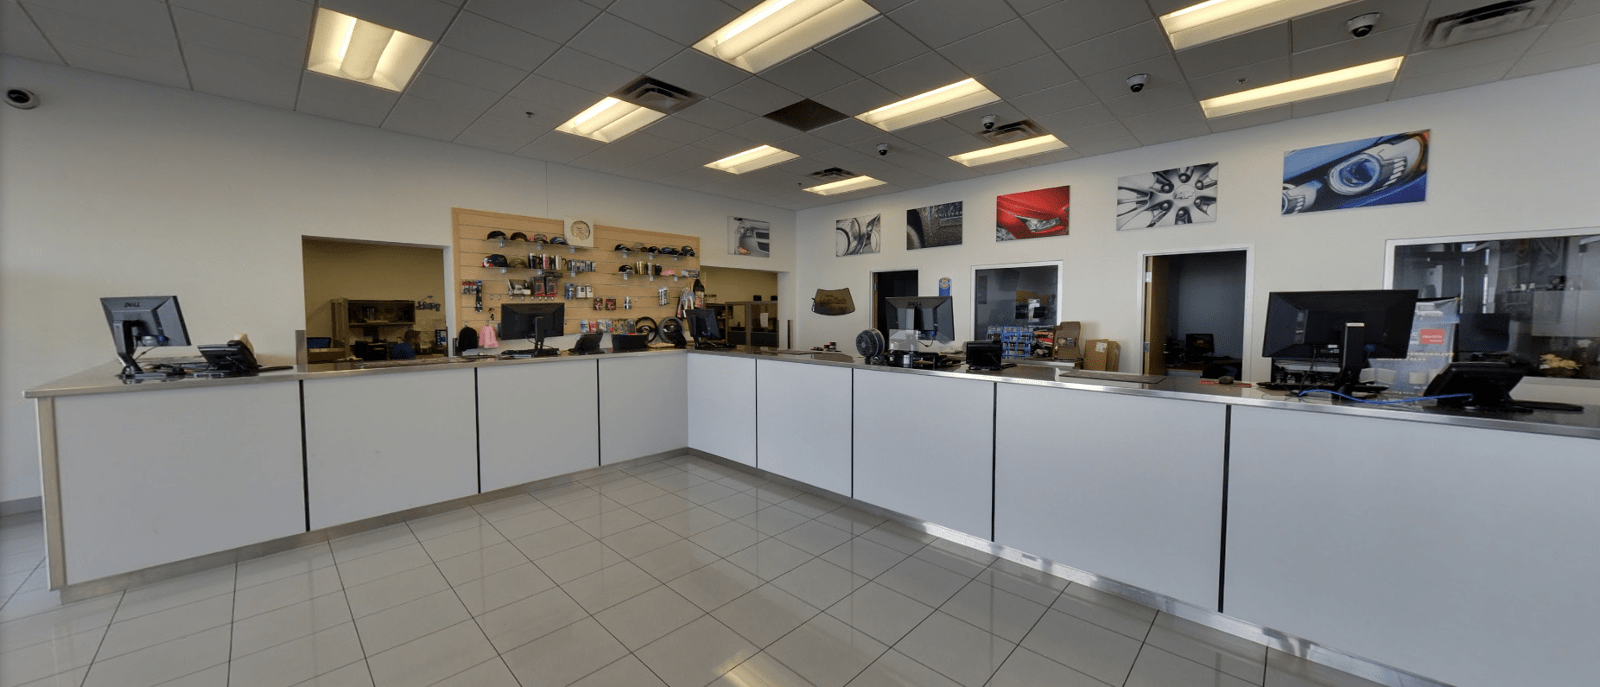 Fairway Chevrolet parts center